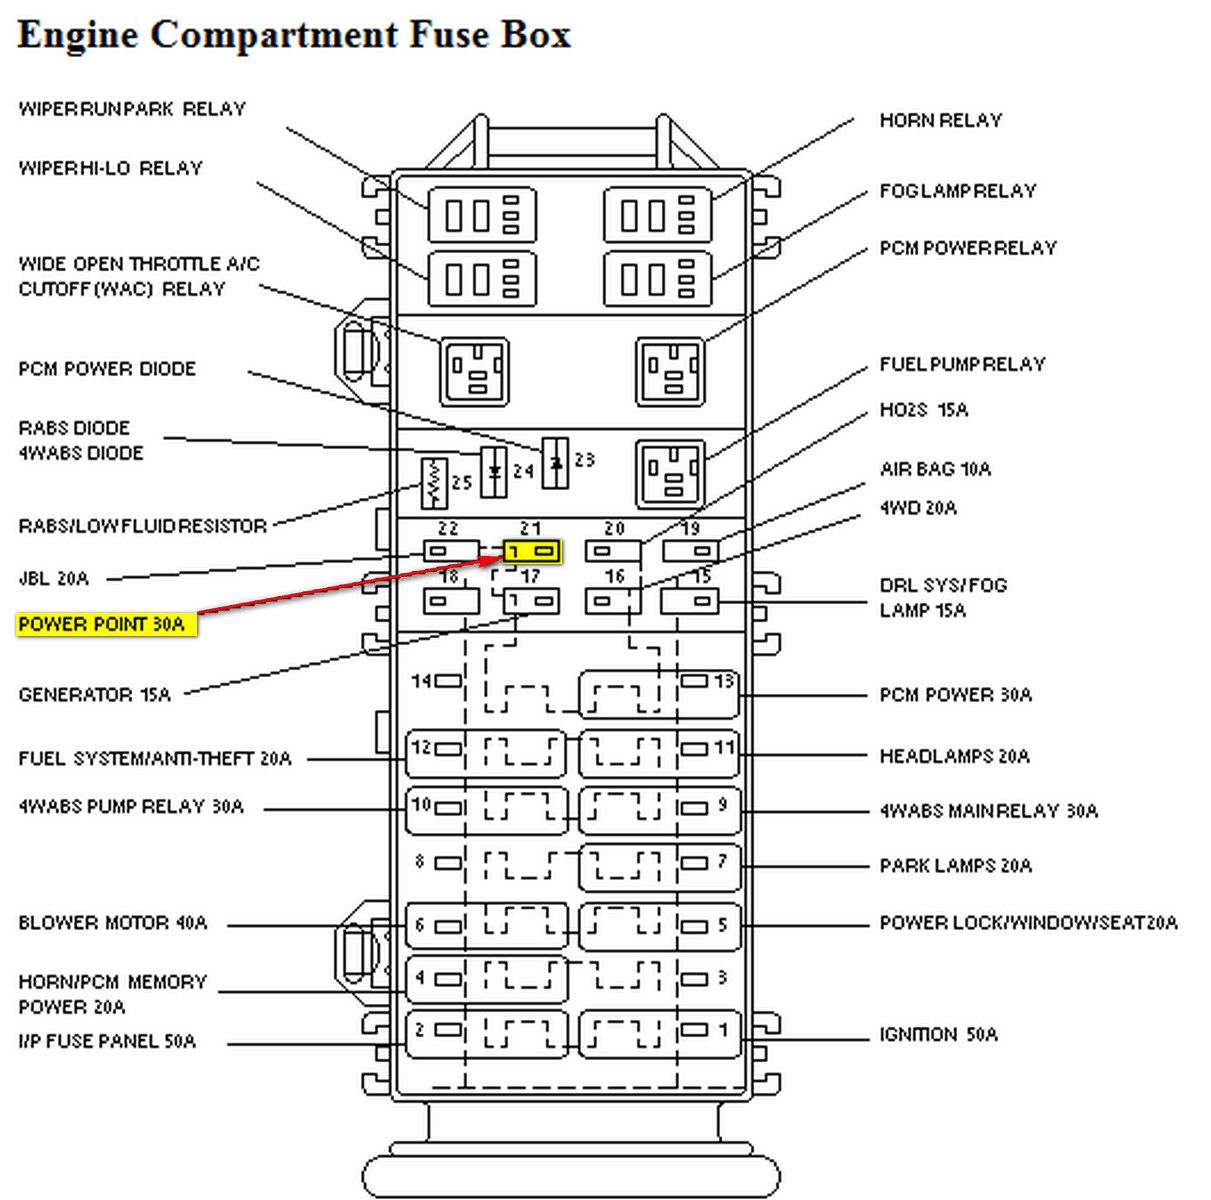 2002 ford ranger fuse diagram 1997 ford ranger fuse box diagram2002 ford ranger fuse diagram 1997 [ 1211 x 1200 Pixel ]